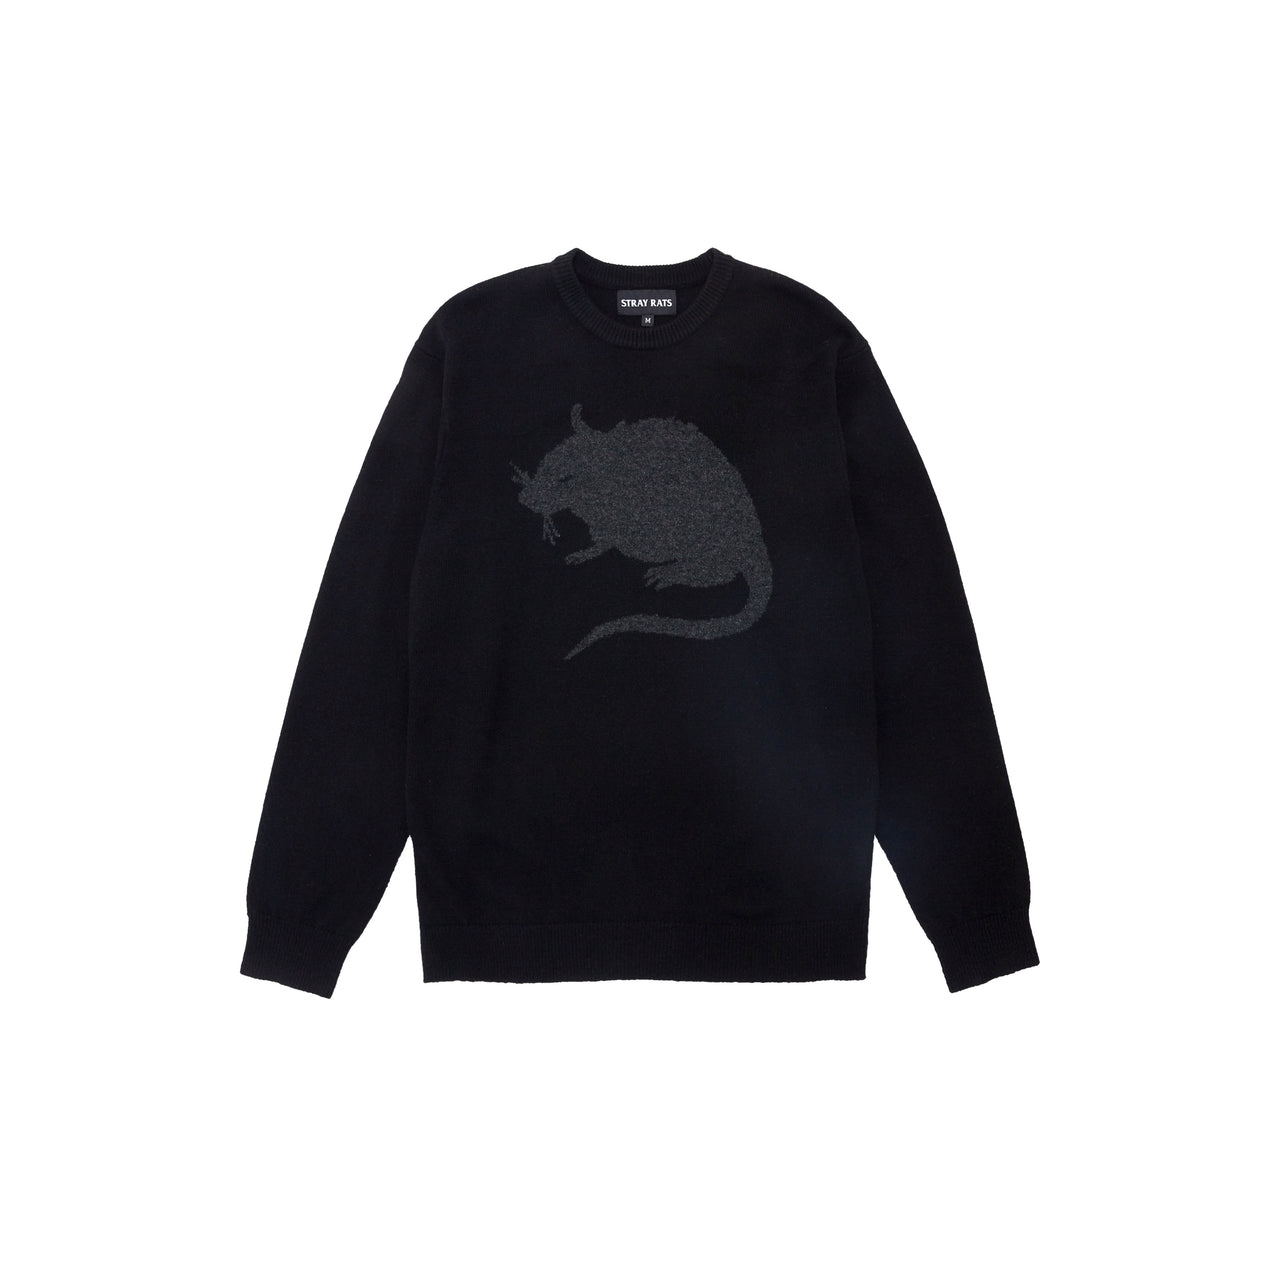 Tonal Rat Logo Sweater (Black)